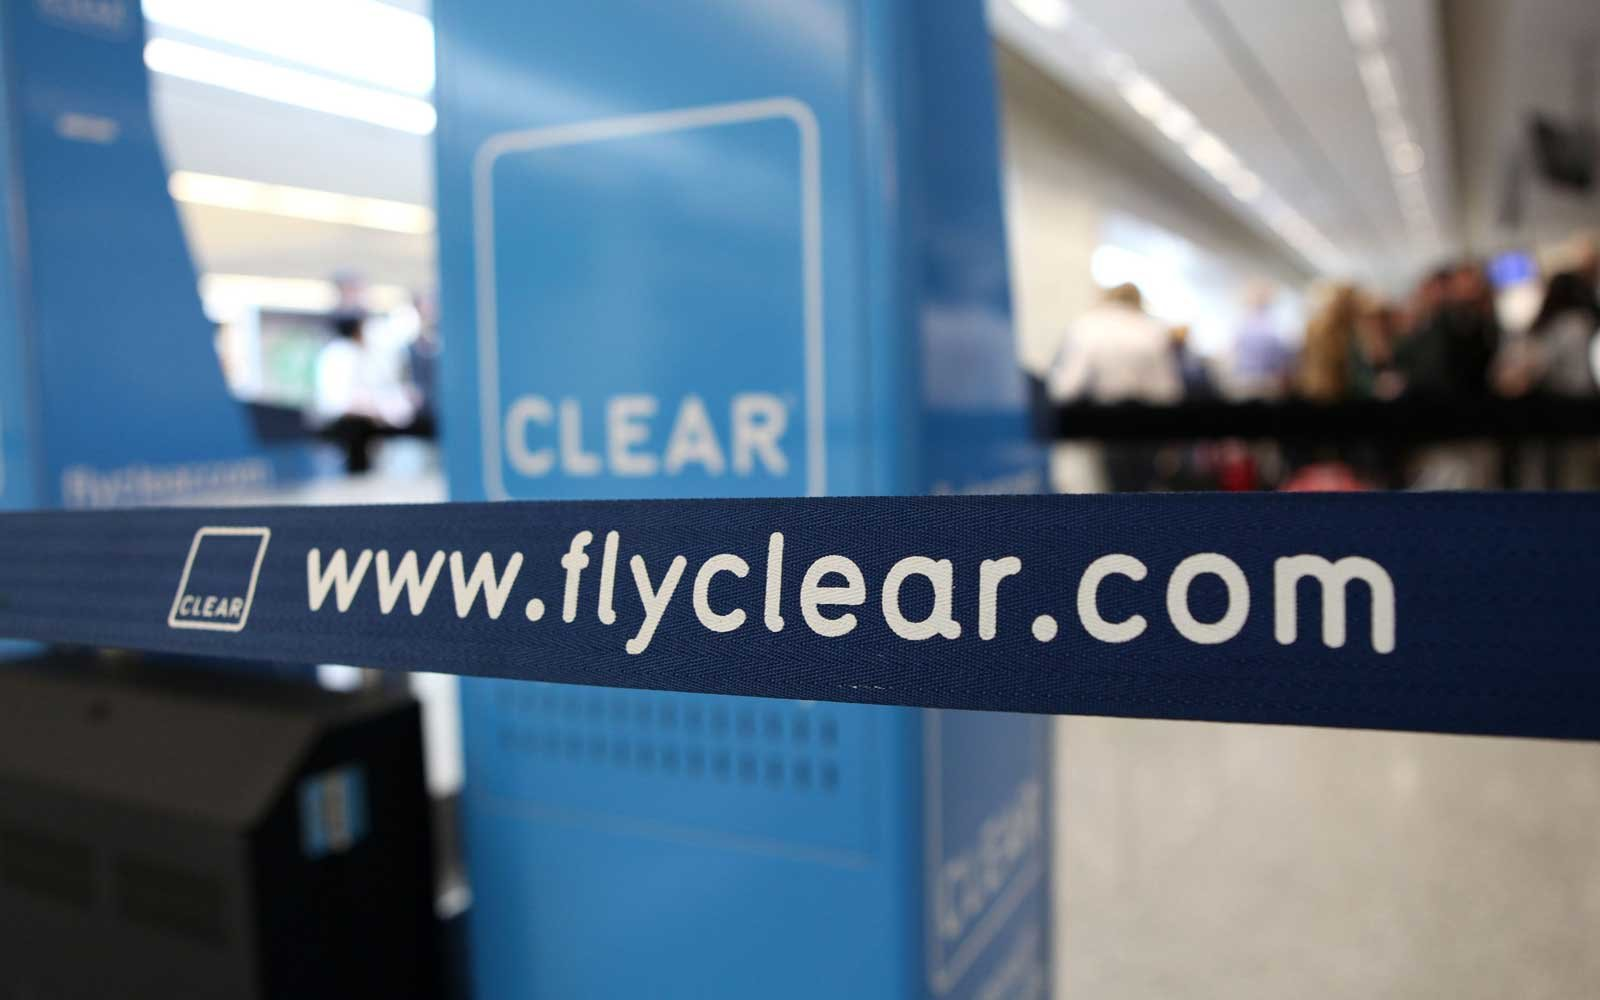 Clear is available across 40 locations in the U.S. to help travelers speed through airports and sports arenas.